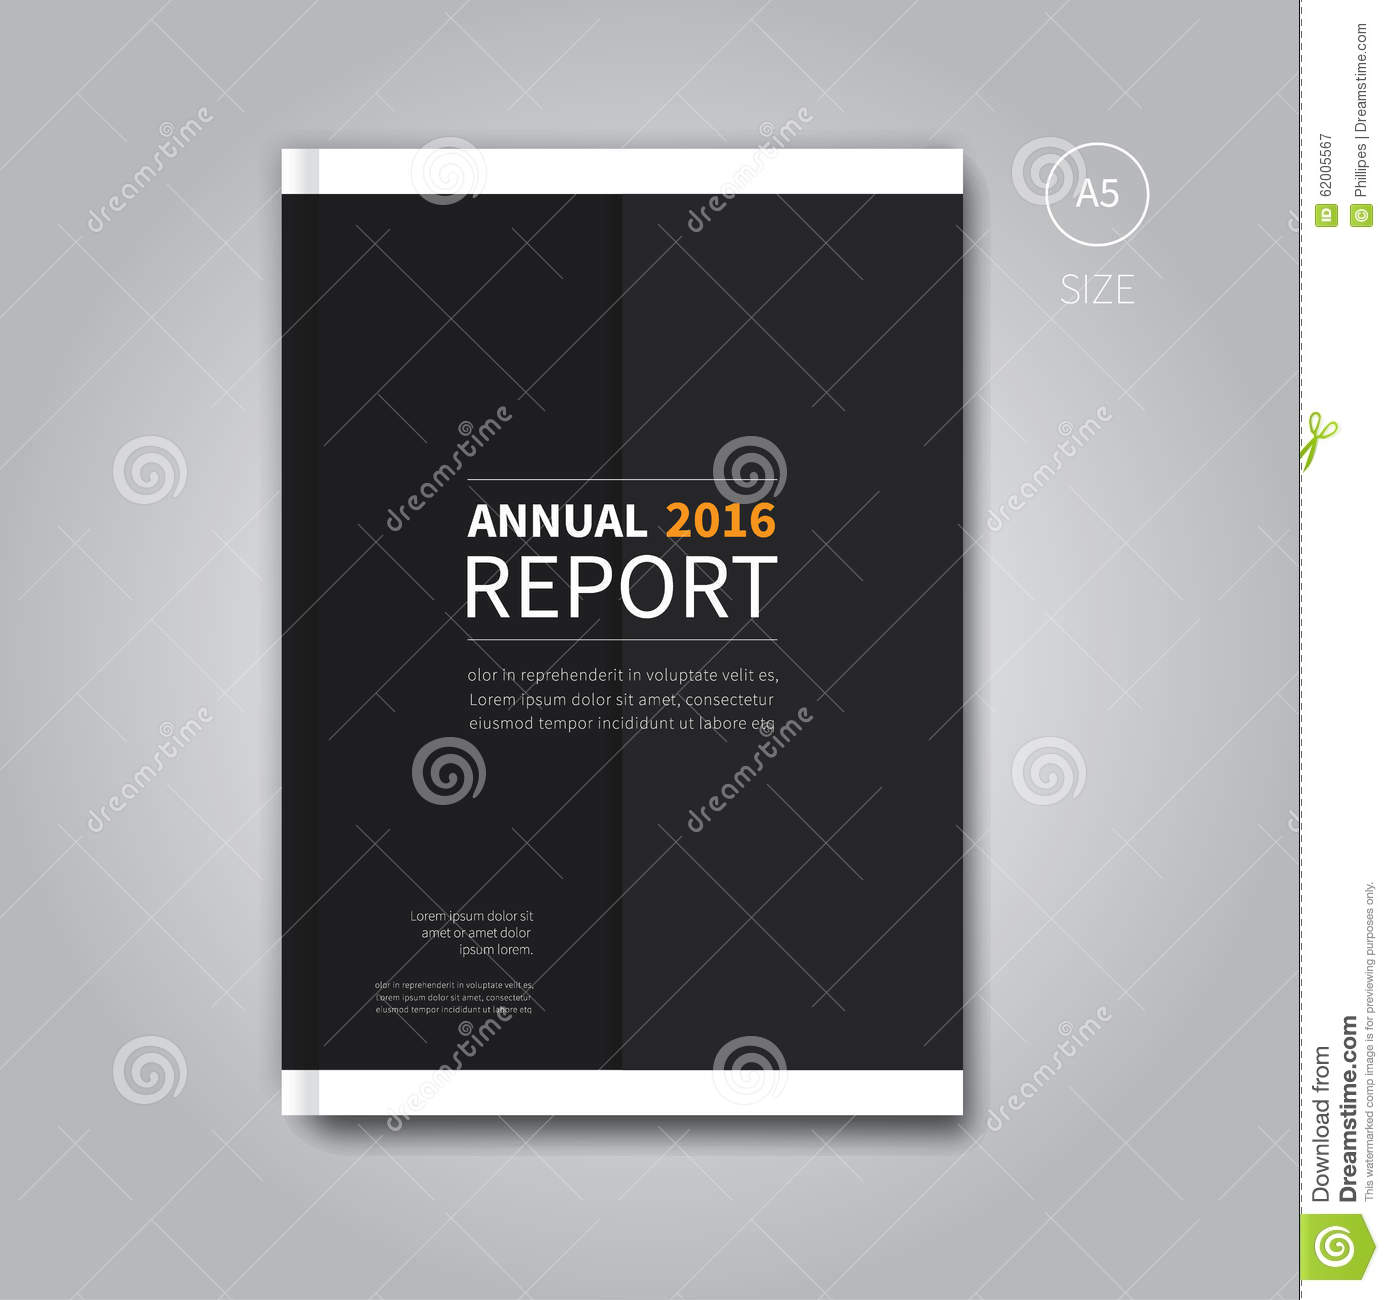 modern annual report book template stock illustration